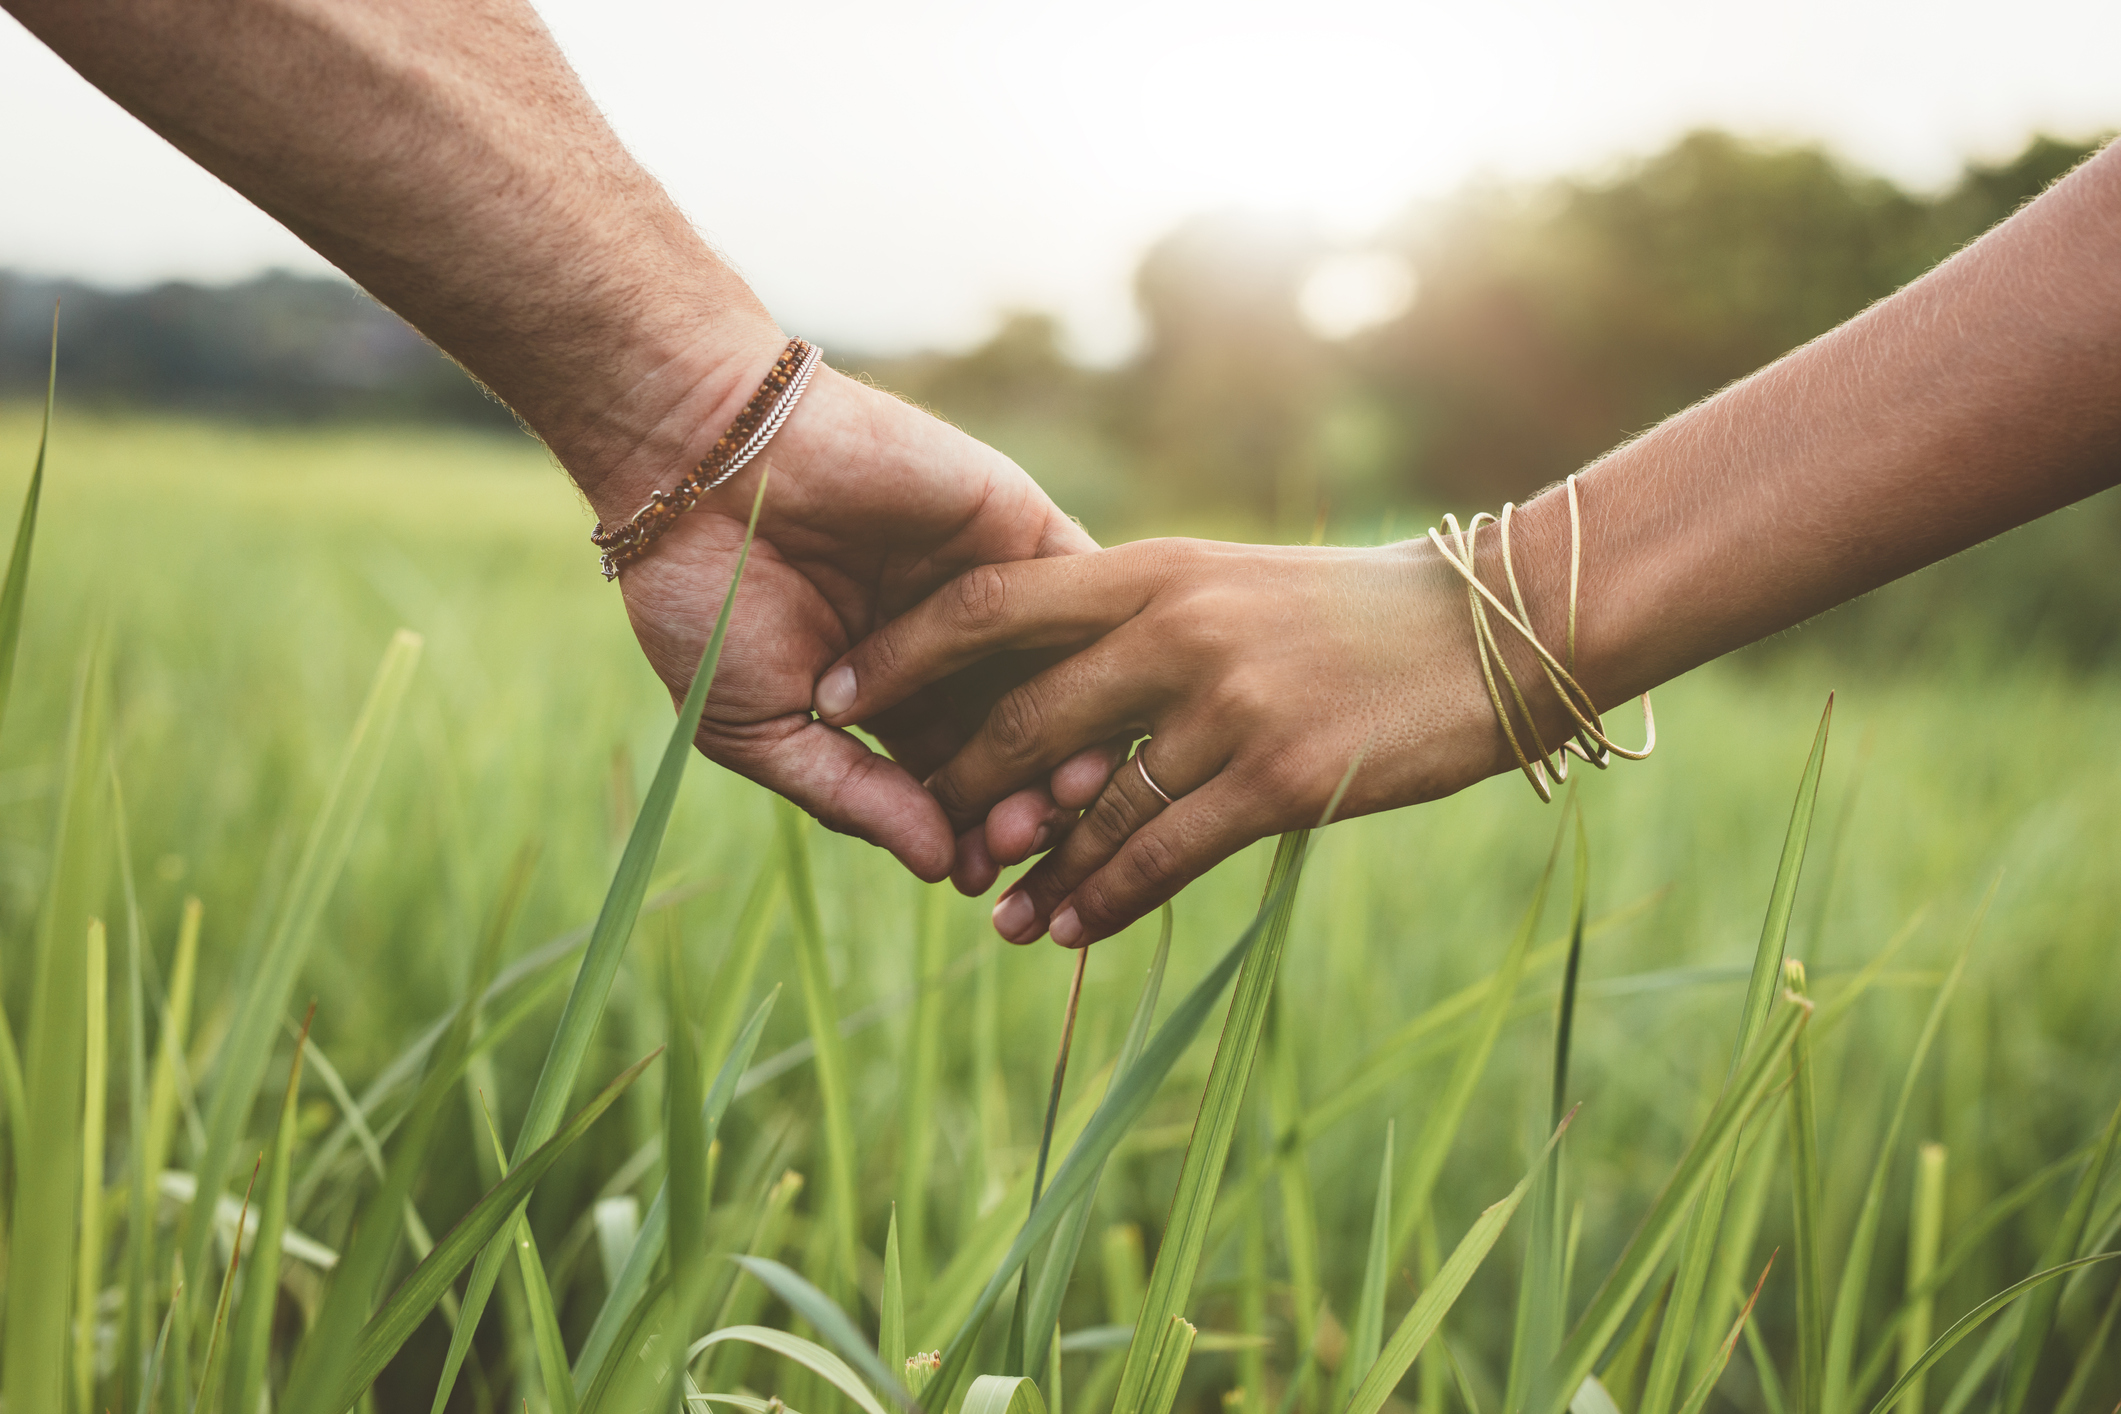 You meet. You flirt. - You get to know each other. You fall in love. You feel connected to this other person—physically and emotionally. Whether it came early or later in the relationship, sex is often a big part of feeling intimately connected to your partner.